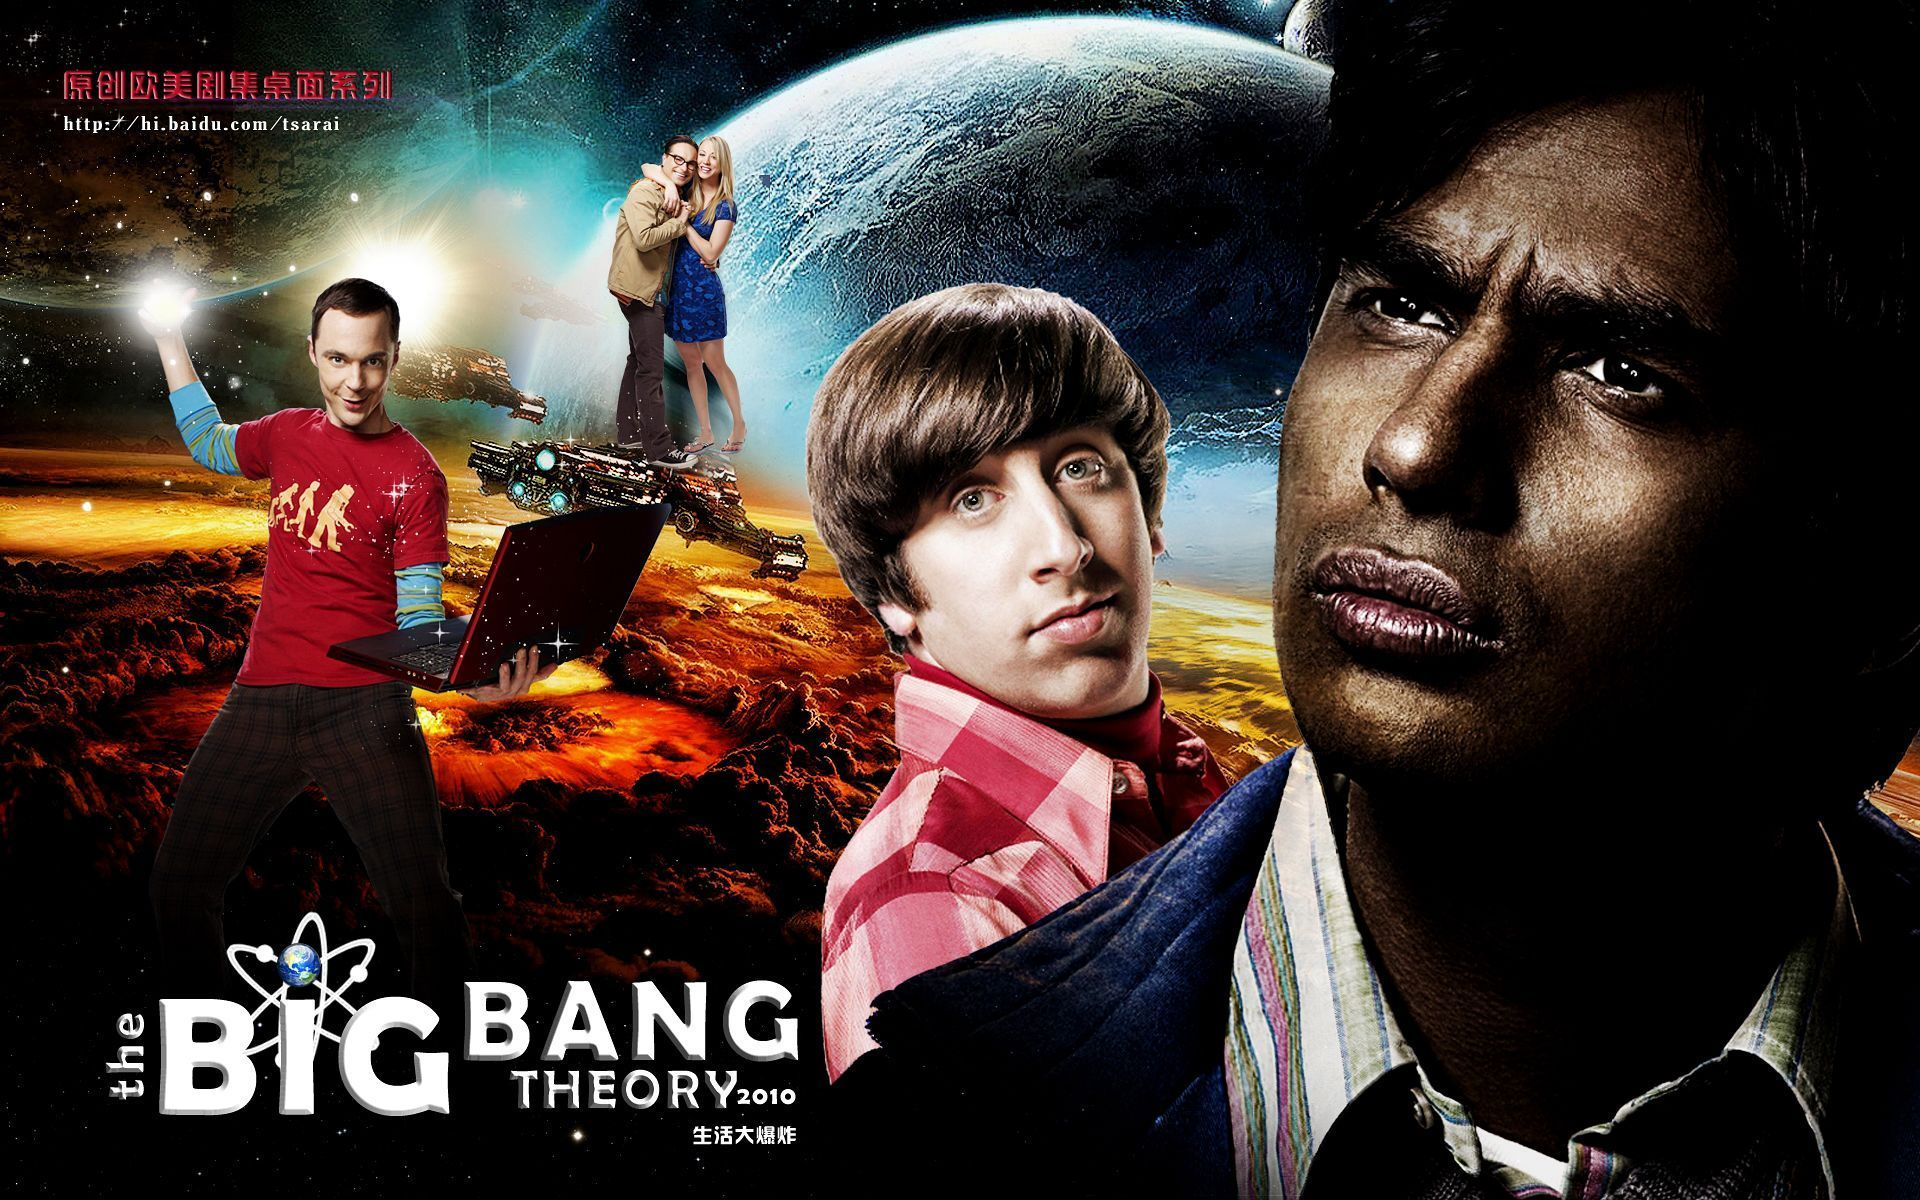 The Big Bang Theory the big bang theory 生活大爆炸